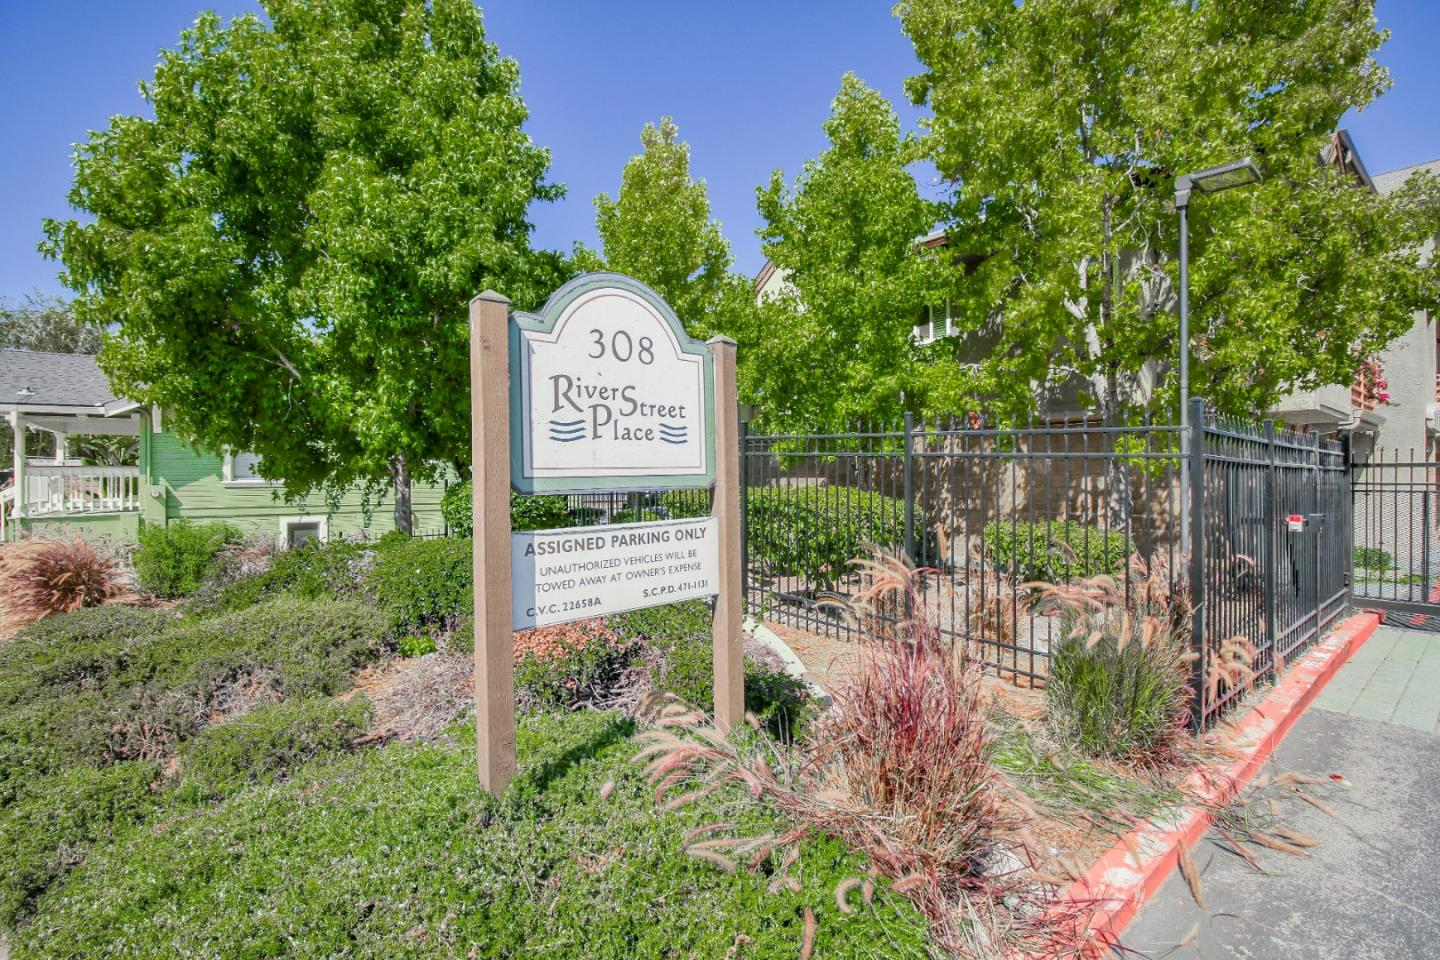 Super cute 2 BR penthouse condo in close proximity for Silicon Valley Commute. Enjoy city lights, mountain views & updates galore in this bright & cheery single level end unit set back from the street. South facing windows & slider w/newer double pane glass lead to private patio w/city views, while the northern windows look out to the beautiful SC mountains & Pogonip area. Kitchen has recently updated refrigerator, ceiling fan, light fixtures, newer appliances, granite counters, under mount sink & water filter. Gas FP in LR & custom blinds on all windows. Bathroom remodeled w/ Italian tile flooring, tub/shower surround, custom vanity w/ granite top & large mirror cabinet. Tandem 2-car garage for cars/storage plus a dedicated 3rd parking space! Complex is well situated & located close to Beach, downtown, shops, theaters, parks & restaurants. This gated complex is professionally managed w/elevator access, heated pool, picnic & BBQ area, plus gated access to the river/levee trail.